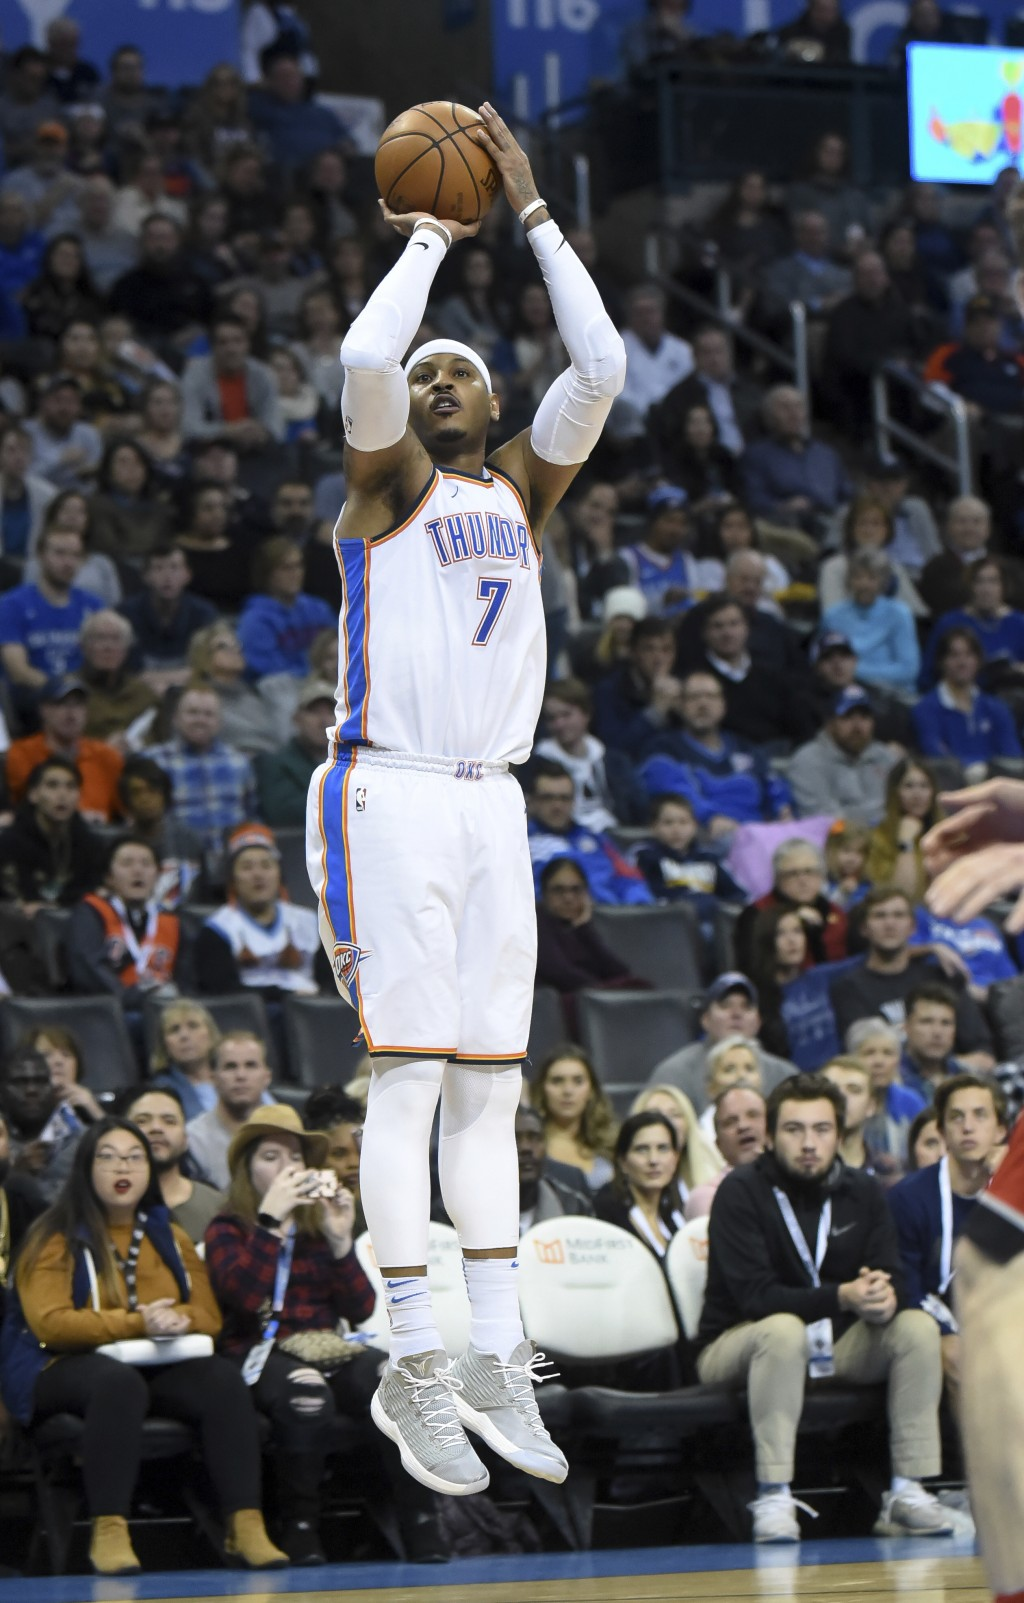 Oklahoma City Thunder's Carmelo Anthony shoots against the Toronto Raptors during the second half of an NBA basketball game in Oklahoma City, Wednesda...